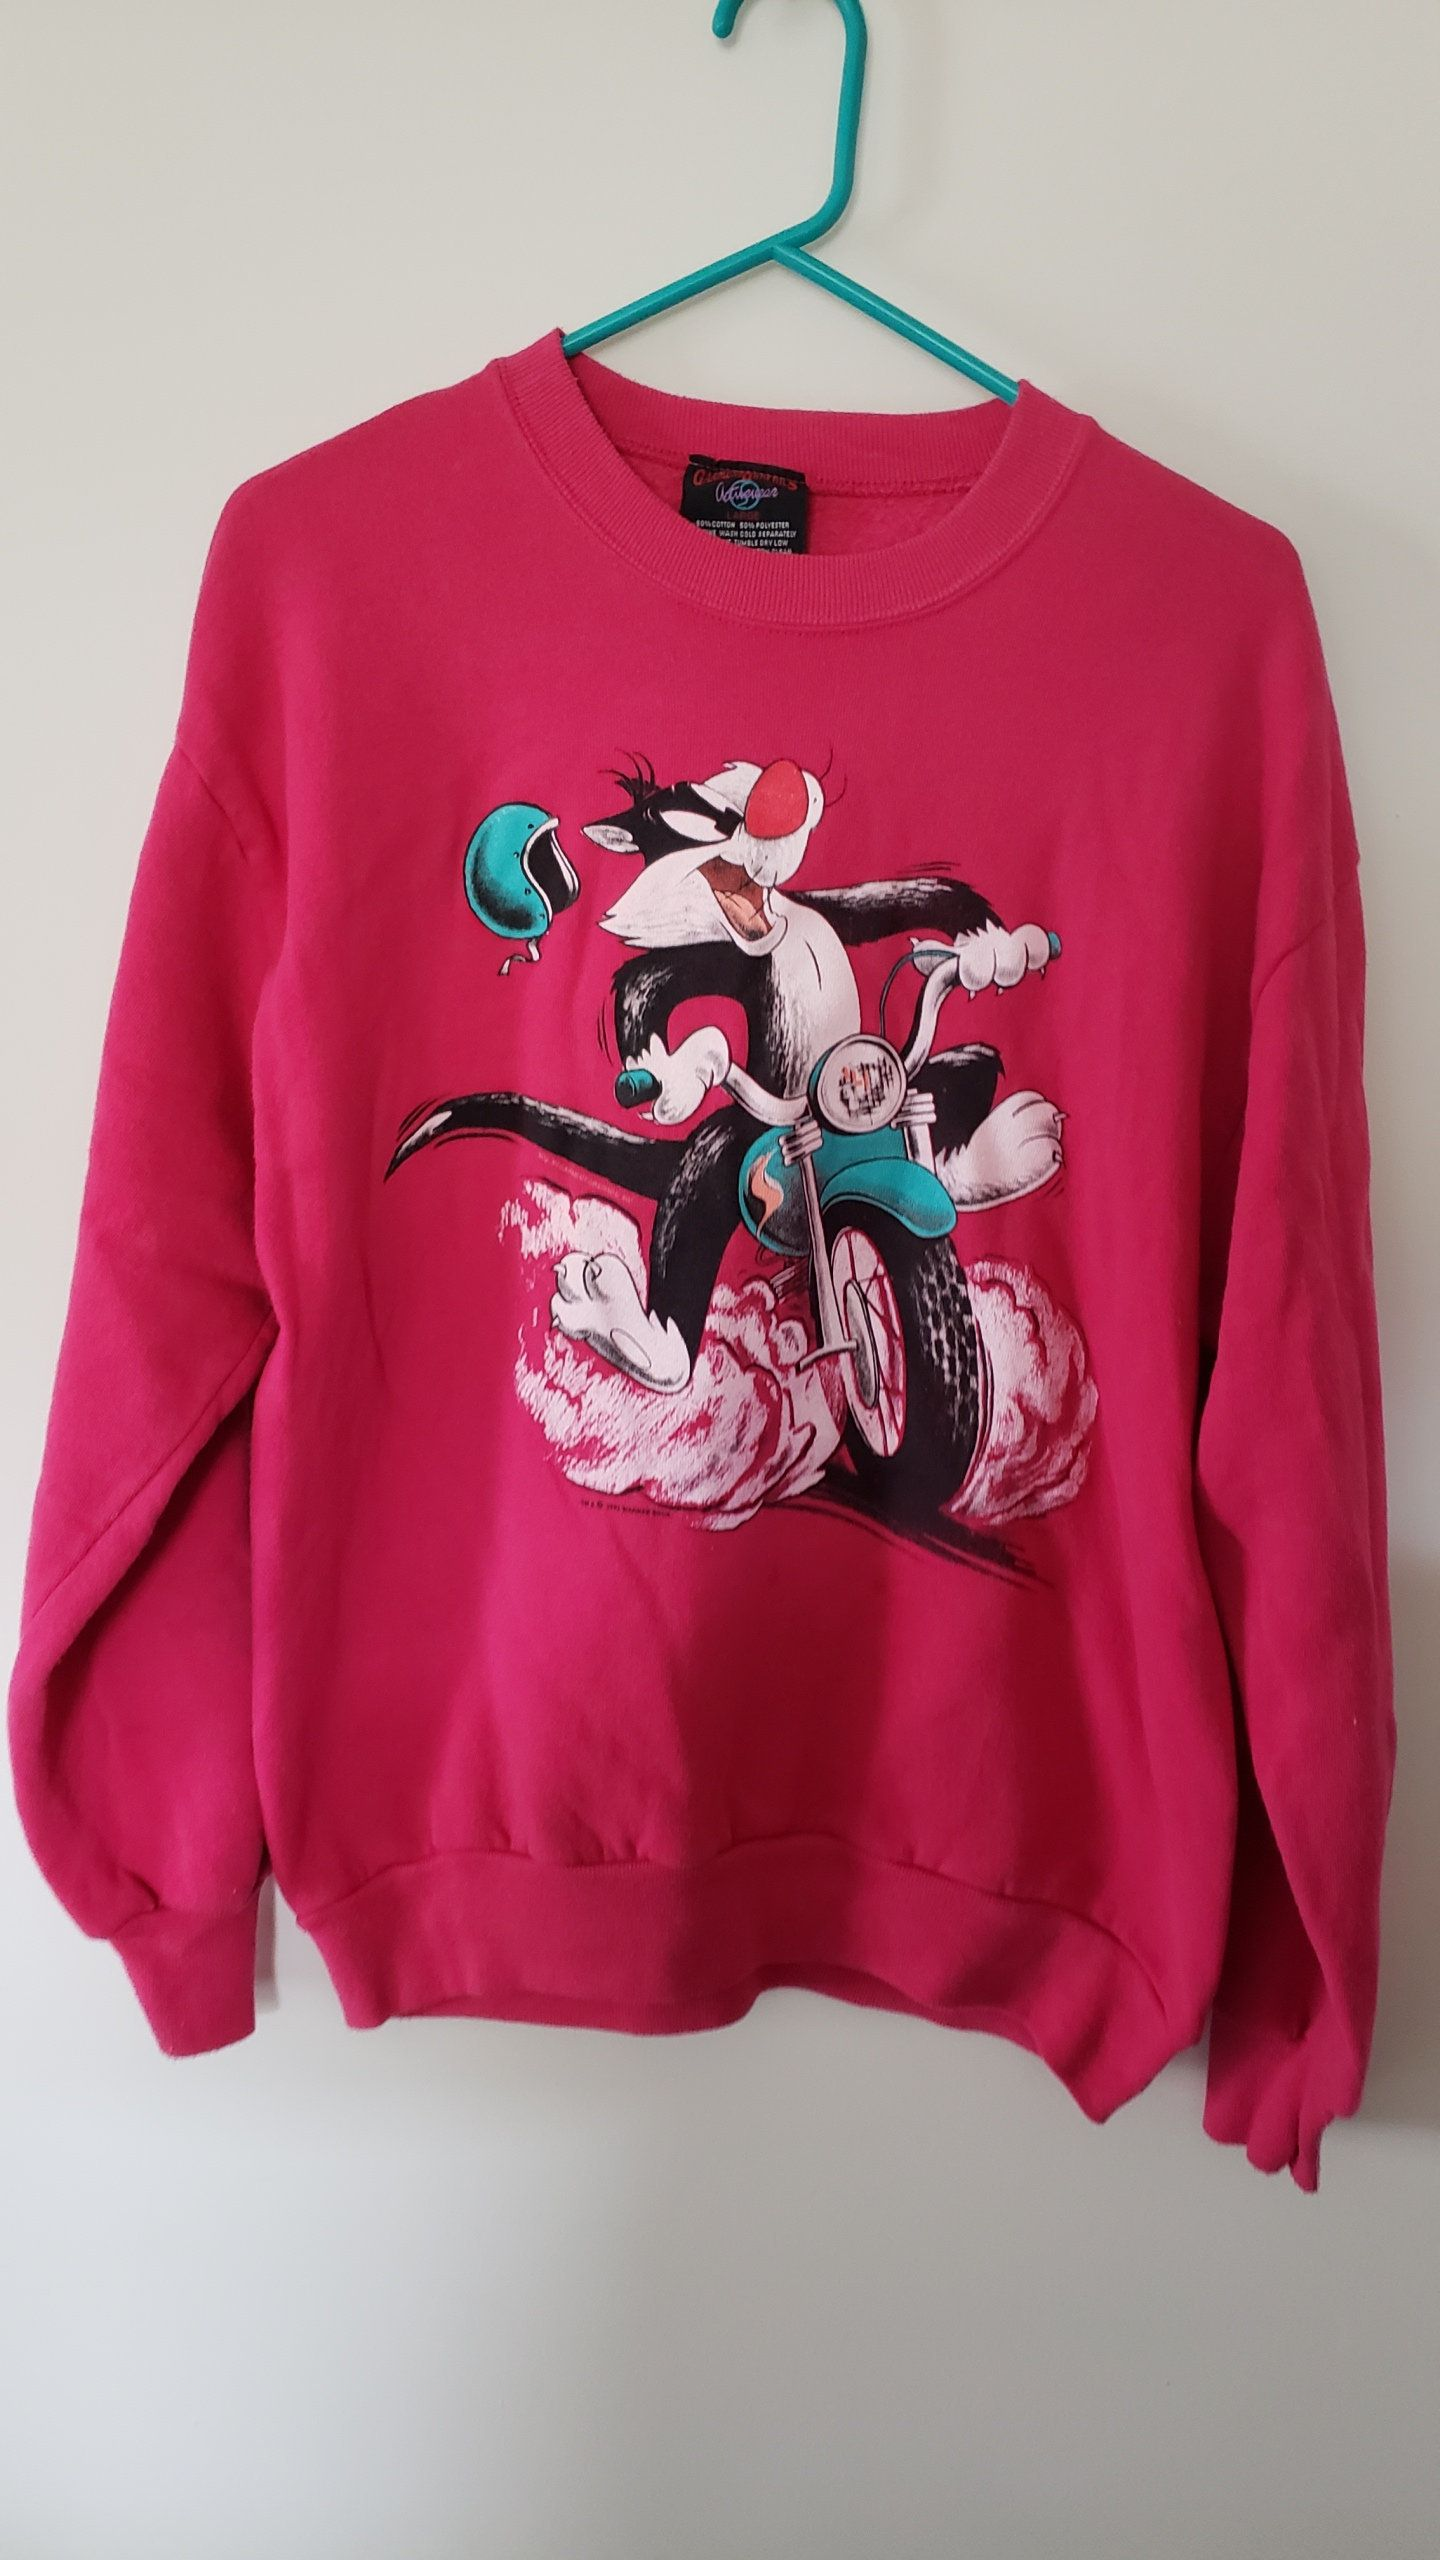 Vintage 90 s Looney Tunes Sylvester the Cat Moped Getaway Crewneck Sweatshirt  Shirt - Size Large by RackRaidersVtg on Etsy ccd7a0c84